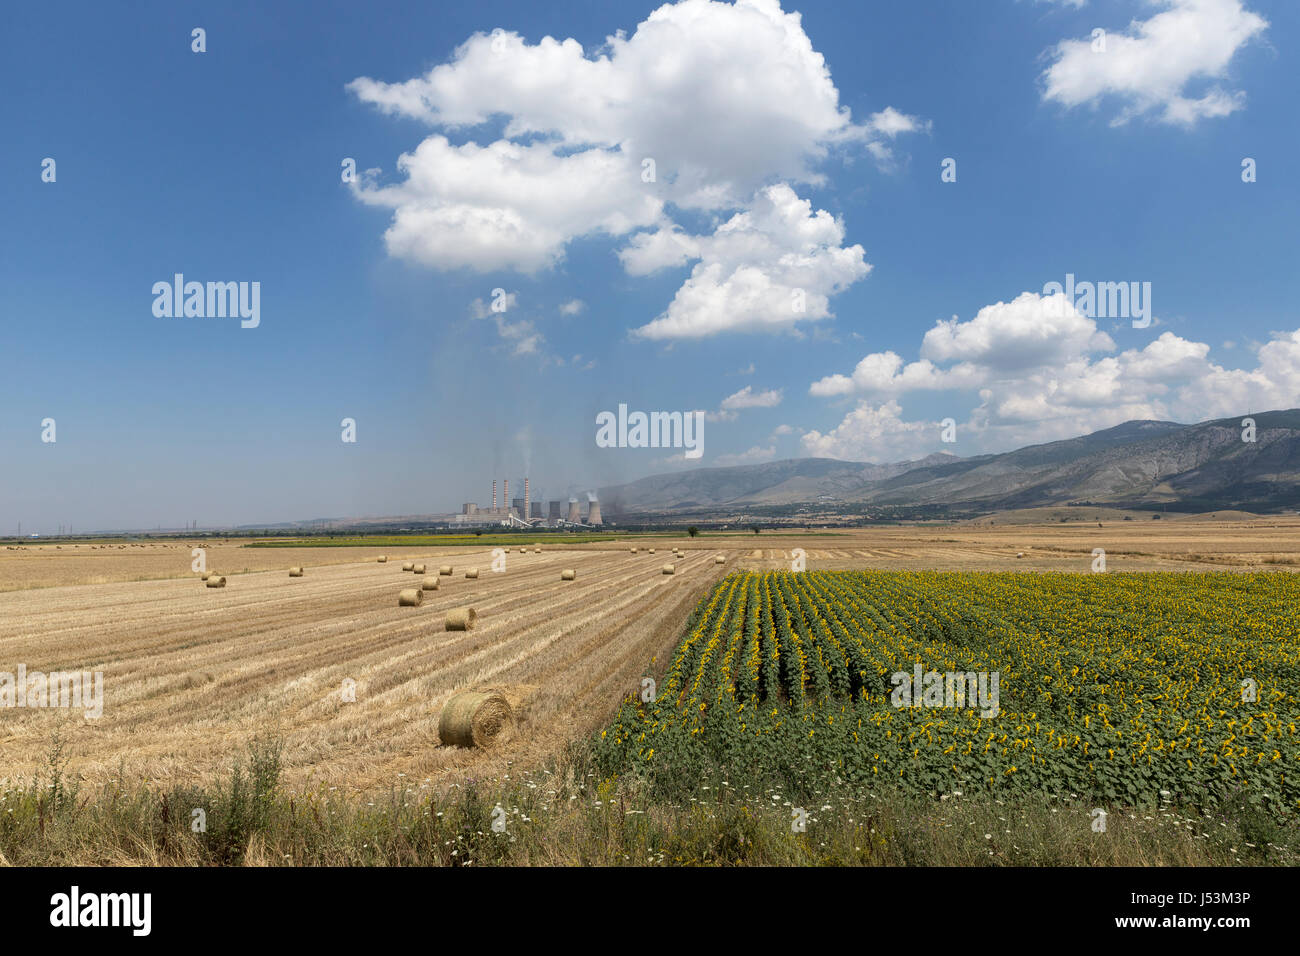 Harvested Field With Straw Bales and a Greek Public Power Company plant in Ptolemaida, Greece. - Stock Image